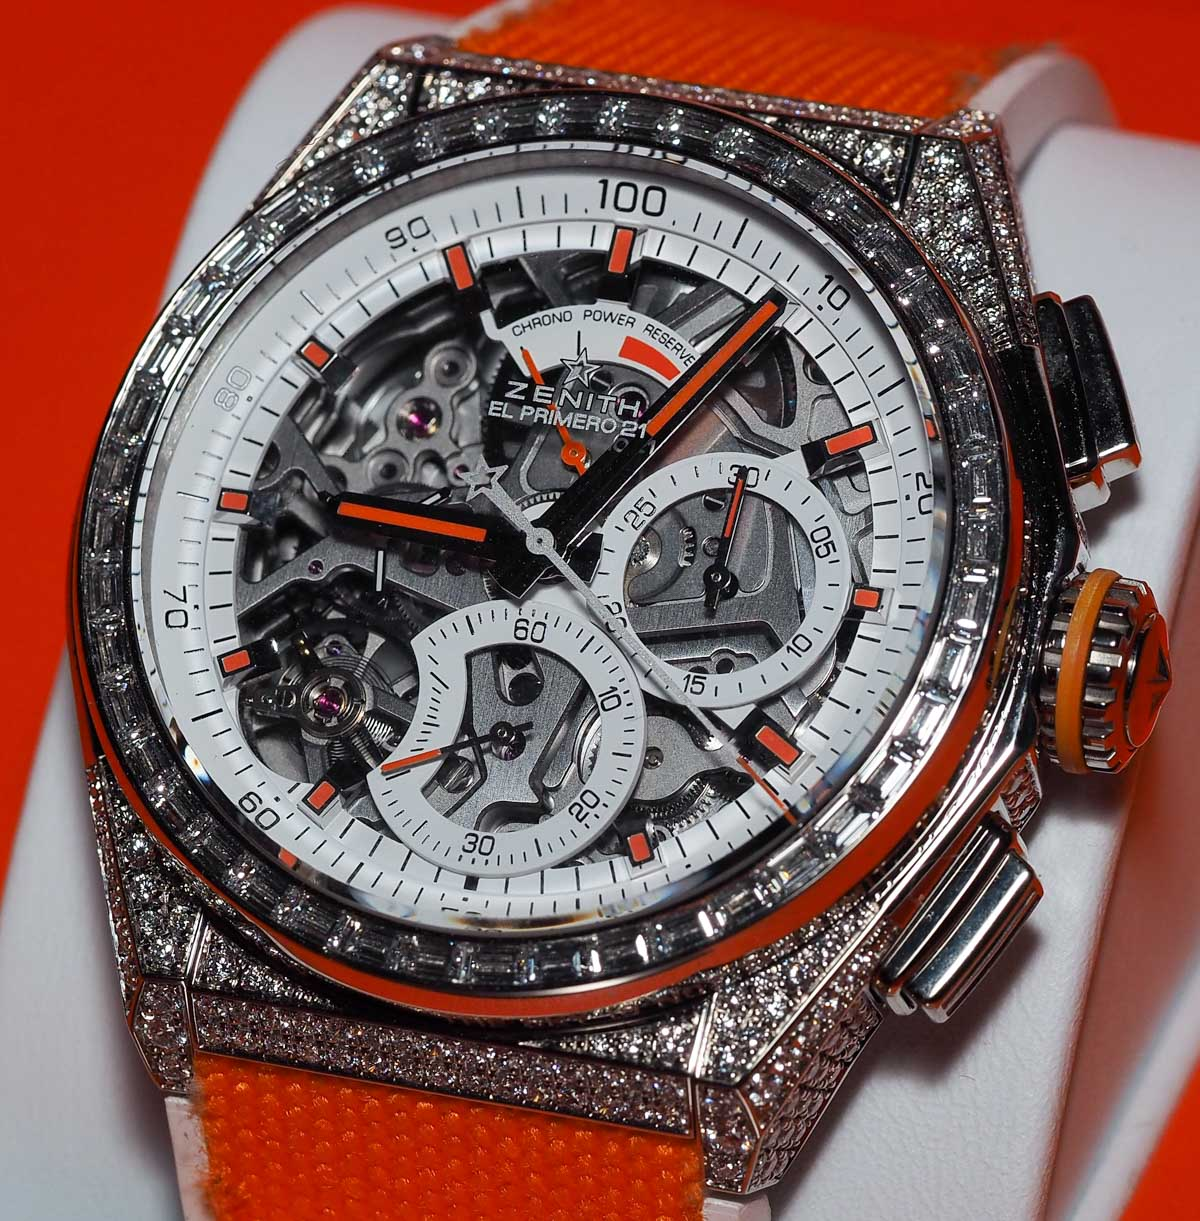 Interview With Swizz Beatz & His New Zenith Defy El Primero 21 Limited Edition Watch ABTW Interviews